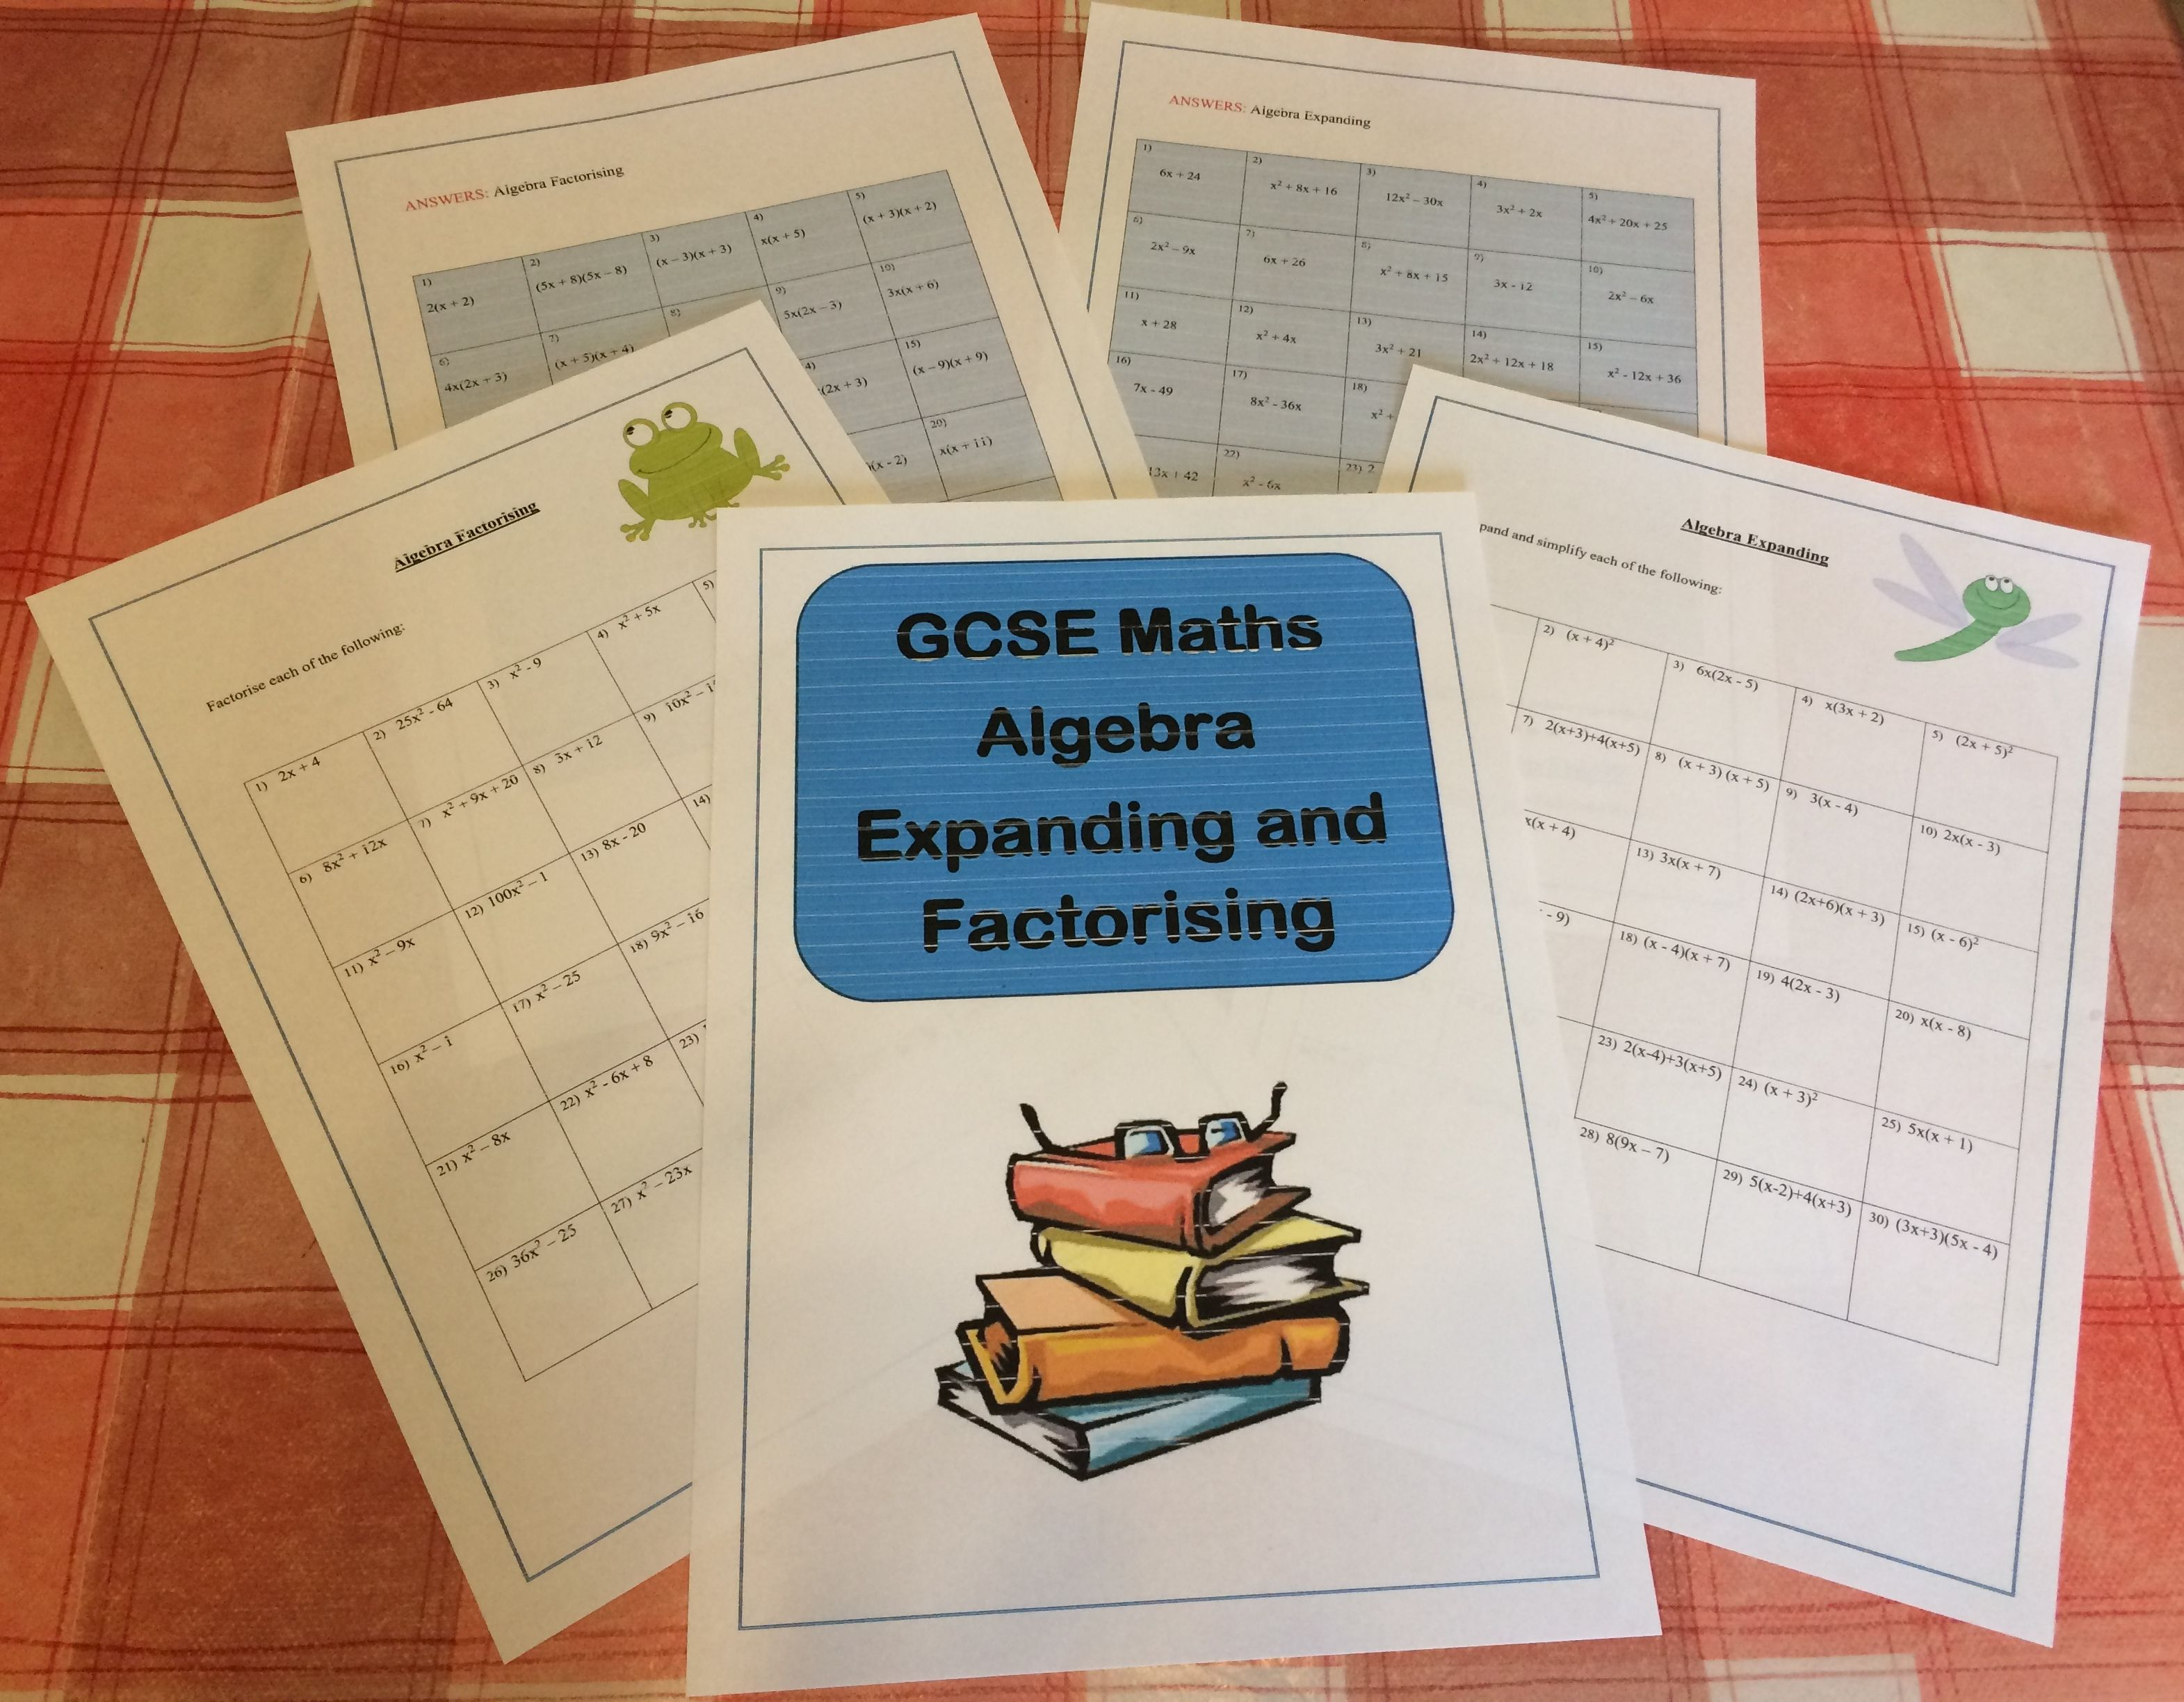 Pin by Elsie9999 Elsie9999 on GCSE 9-1 maths revision | Pinterest ...